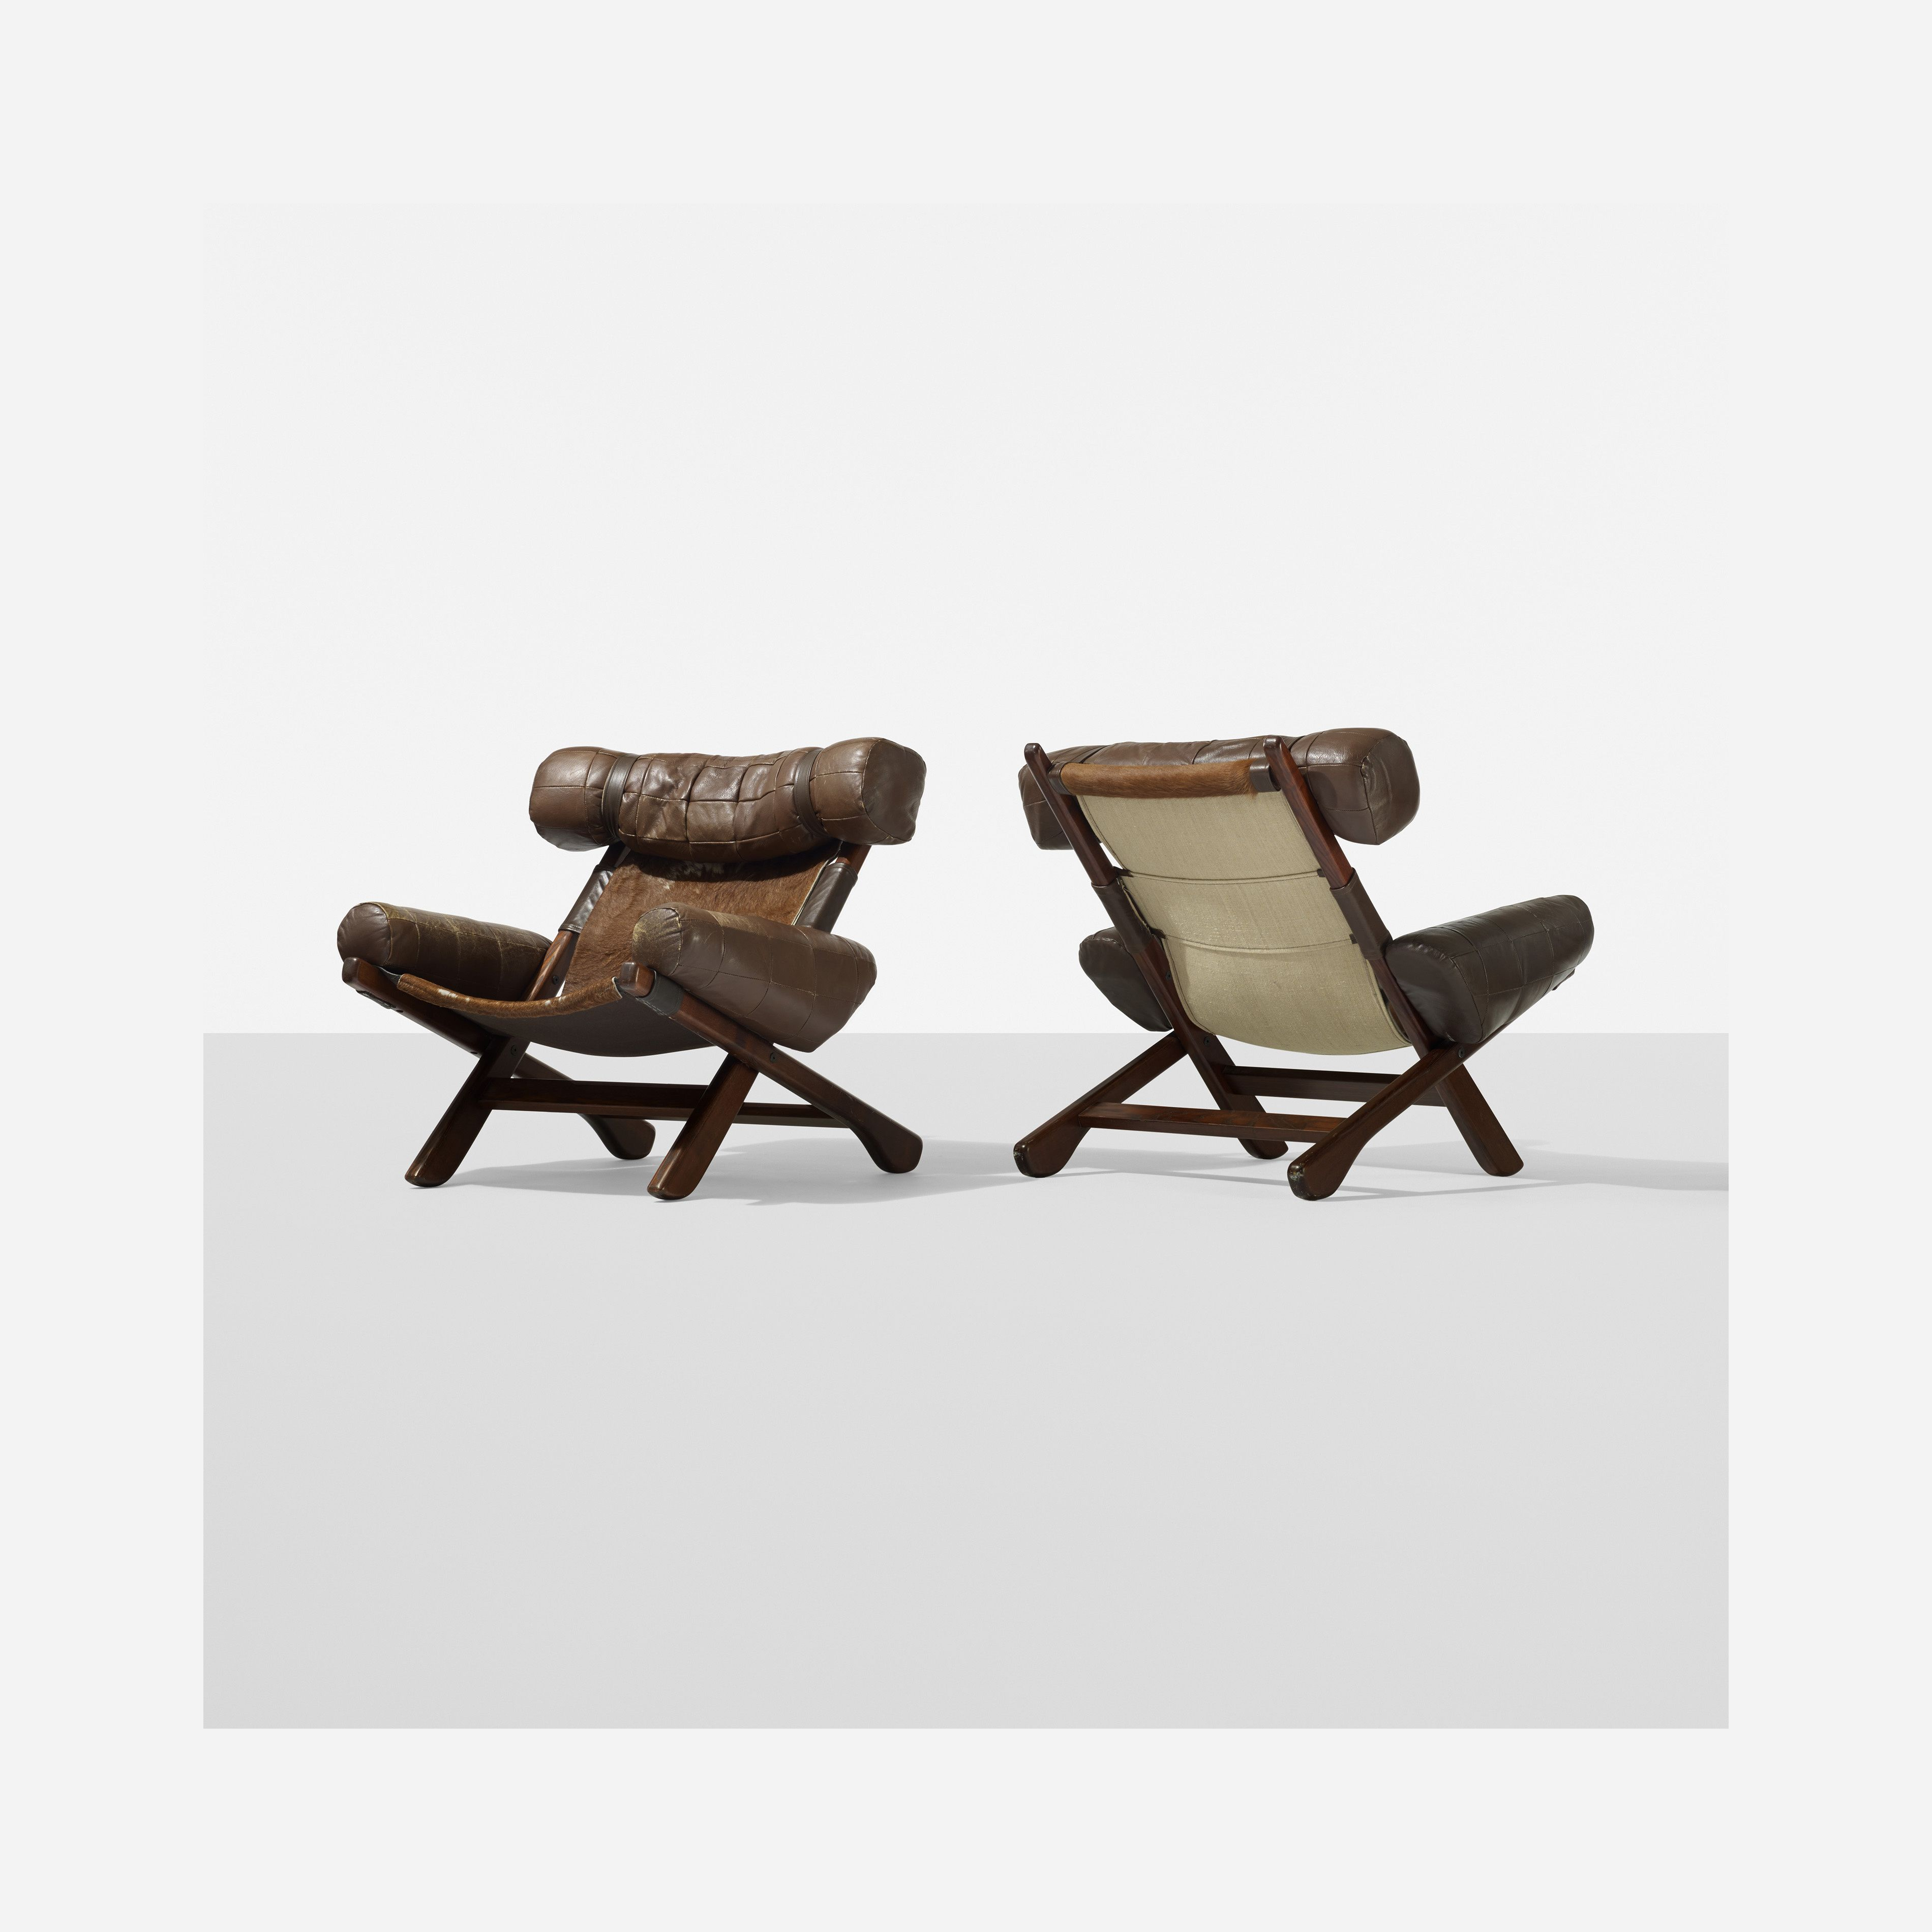 247 Swedish Lounge Chairs Pair Scandinavian Design 20 November 2014 Auctions Wright Rocking Chair Porch Chair Leather Chair